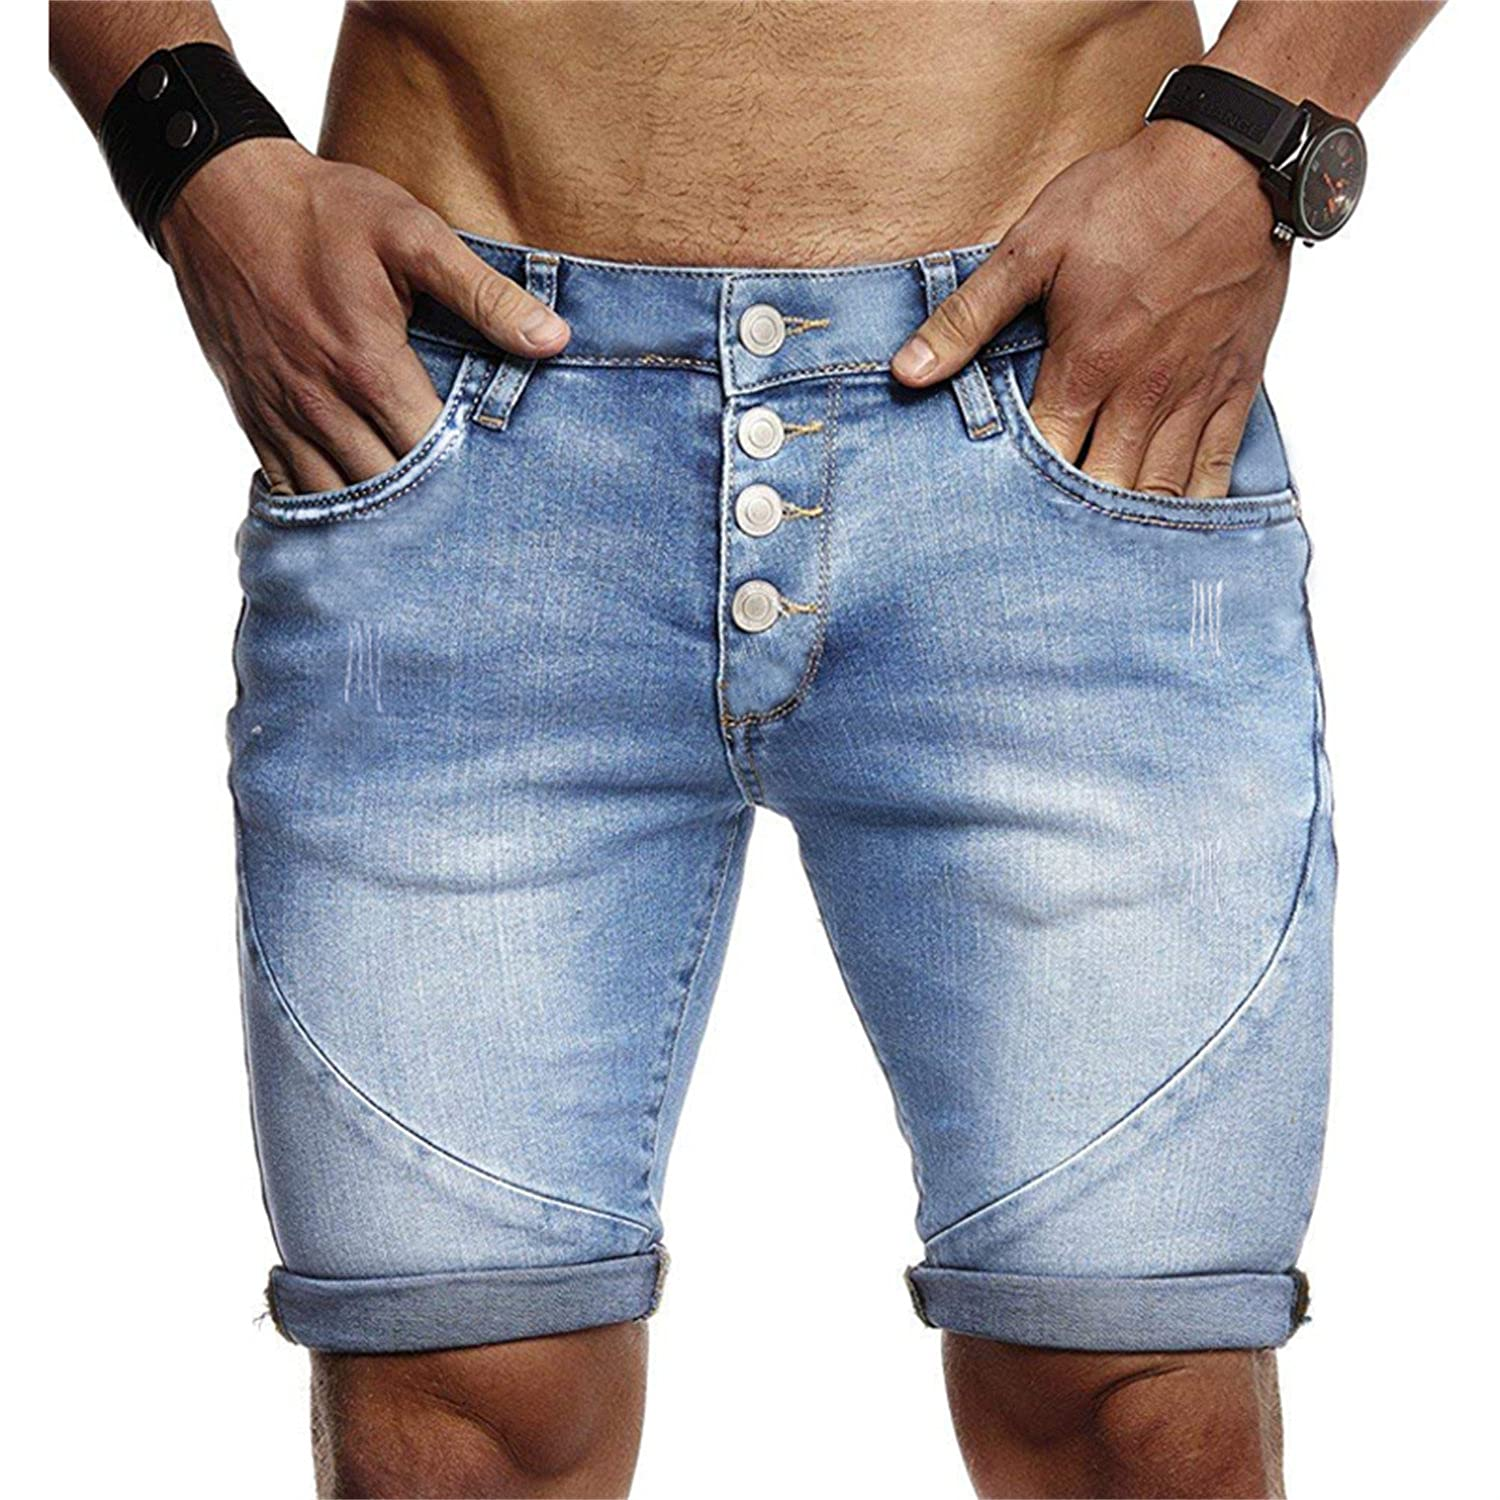 Men's Summer Casual Ripped Short Jeans Fashion Slim Fit Distressed Denim Shorts Stretch Skinny Jeans Shorts with Hole (Large,Blue)